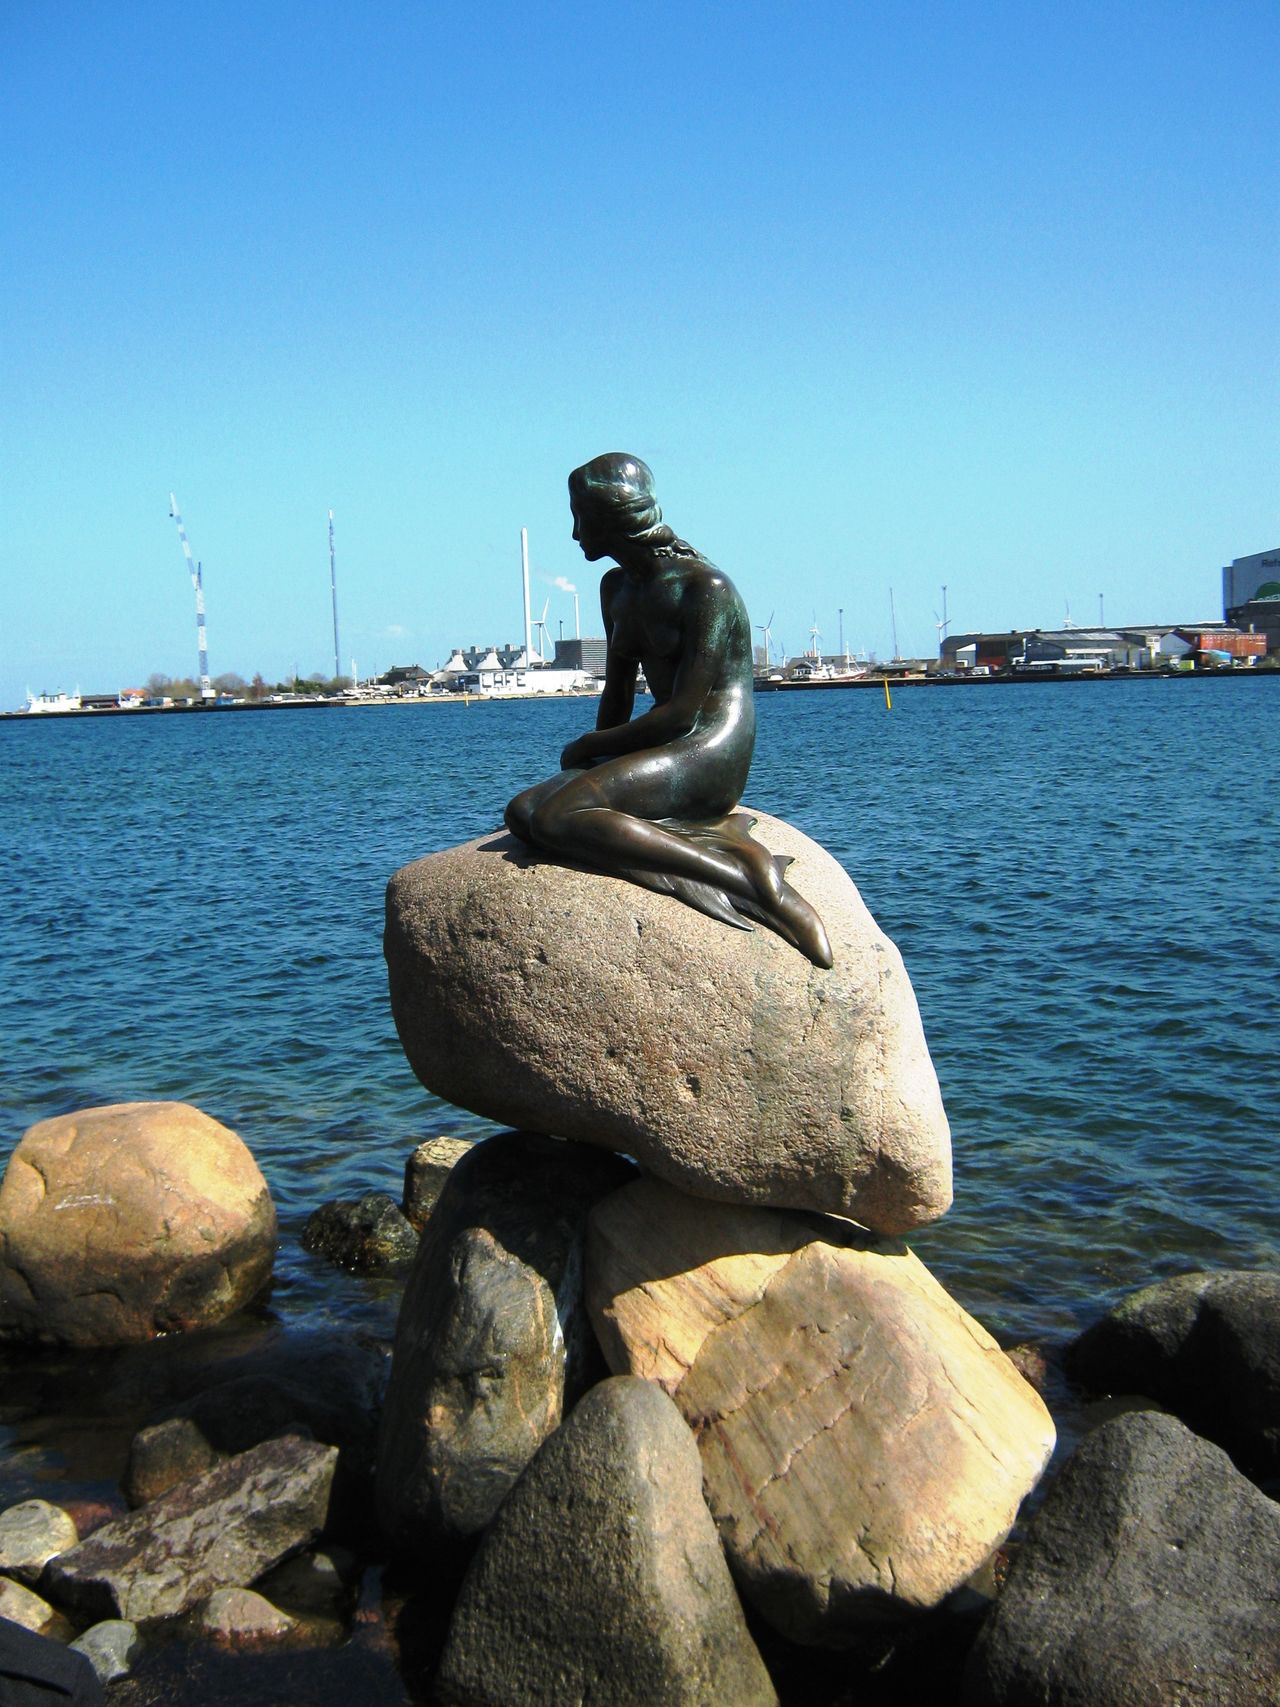 Langelinie, Copenhagen Balance Beauty In Nature Blue Clear Sky Copenhagen Day Langelinie Nature No People Outdoors Rippled Rock Rock - Object Scenics Sea Sky Stone Stone - Object The Little Mermaid The Little Mermaid. Tranquil Scene Tranquility Water